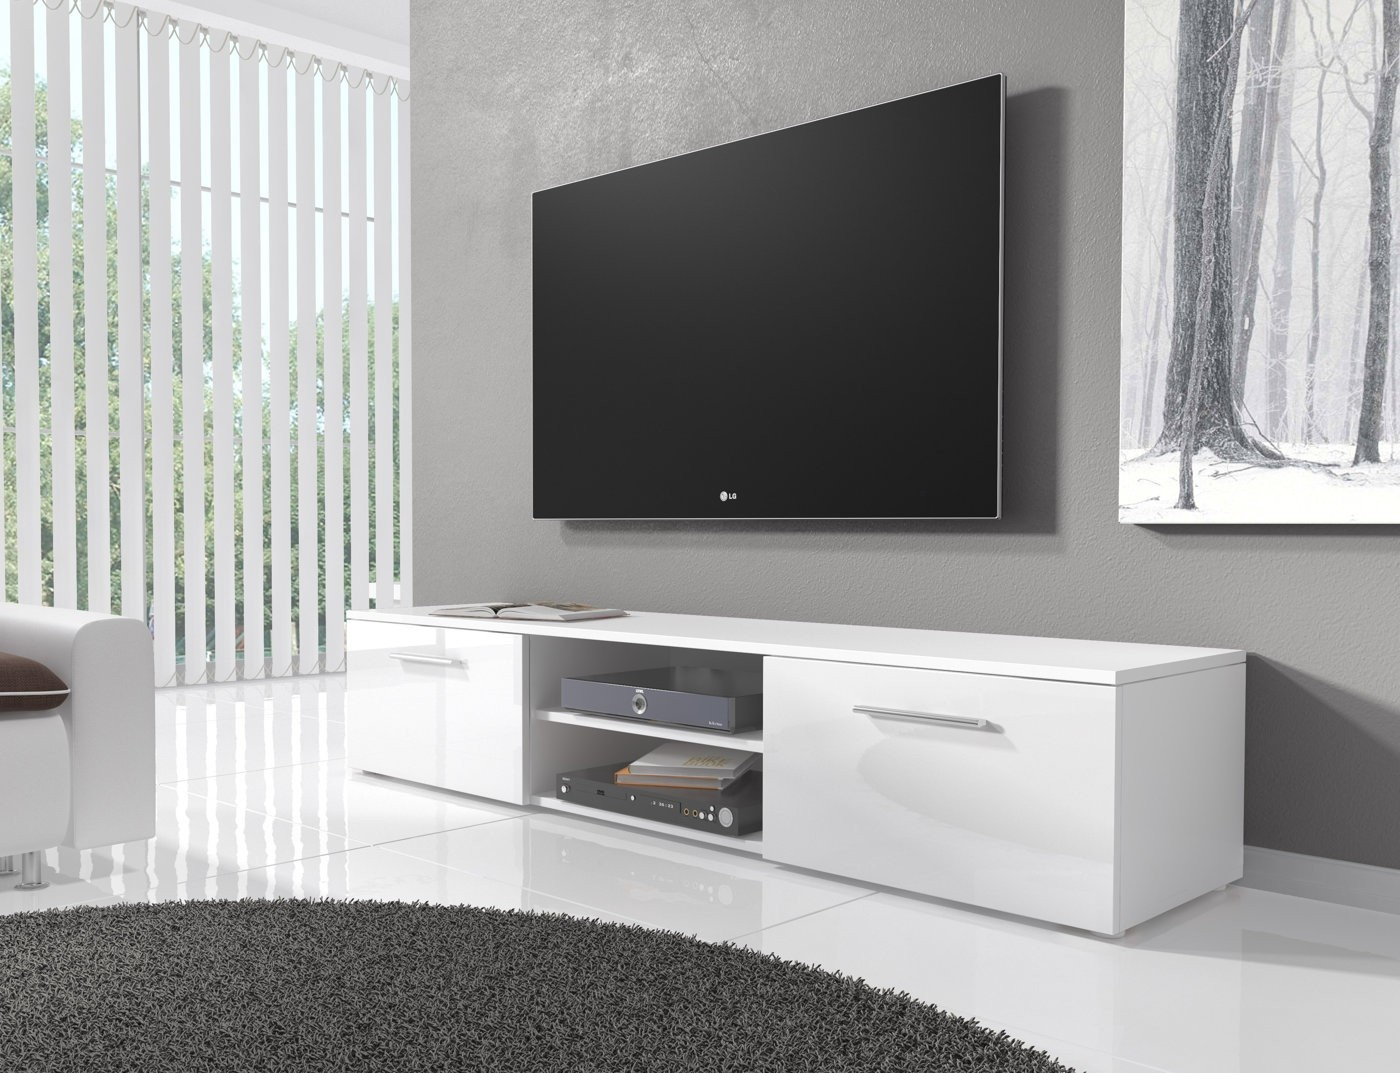 tv meubel basura i wit 160 cm meubella. Black Bedroom Furniture Sets. Home Design Ideas